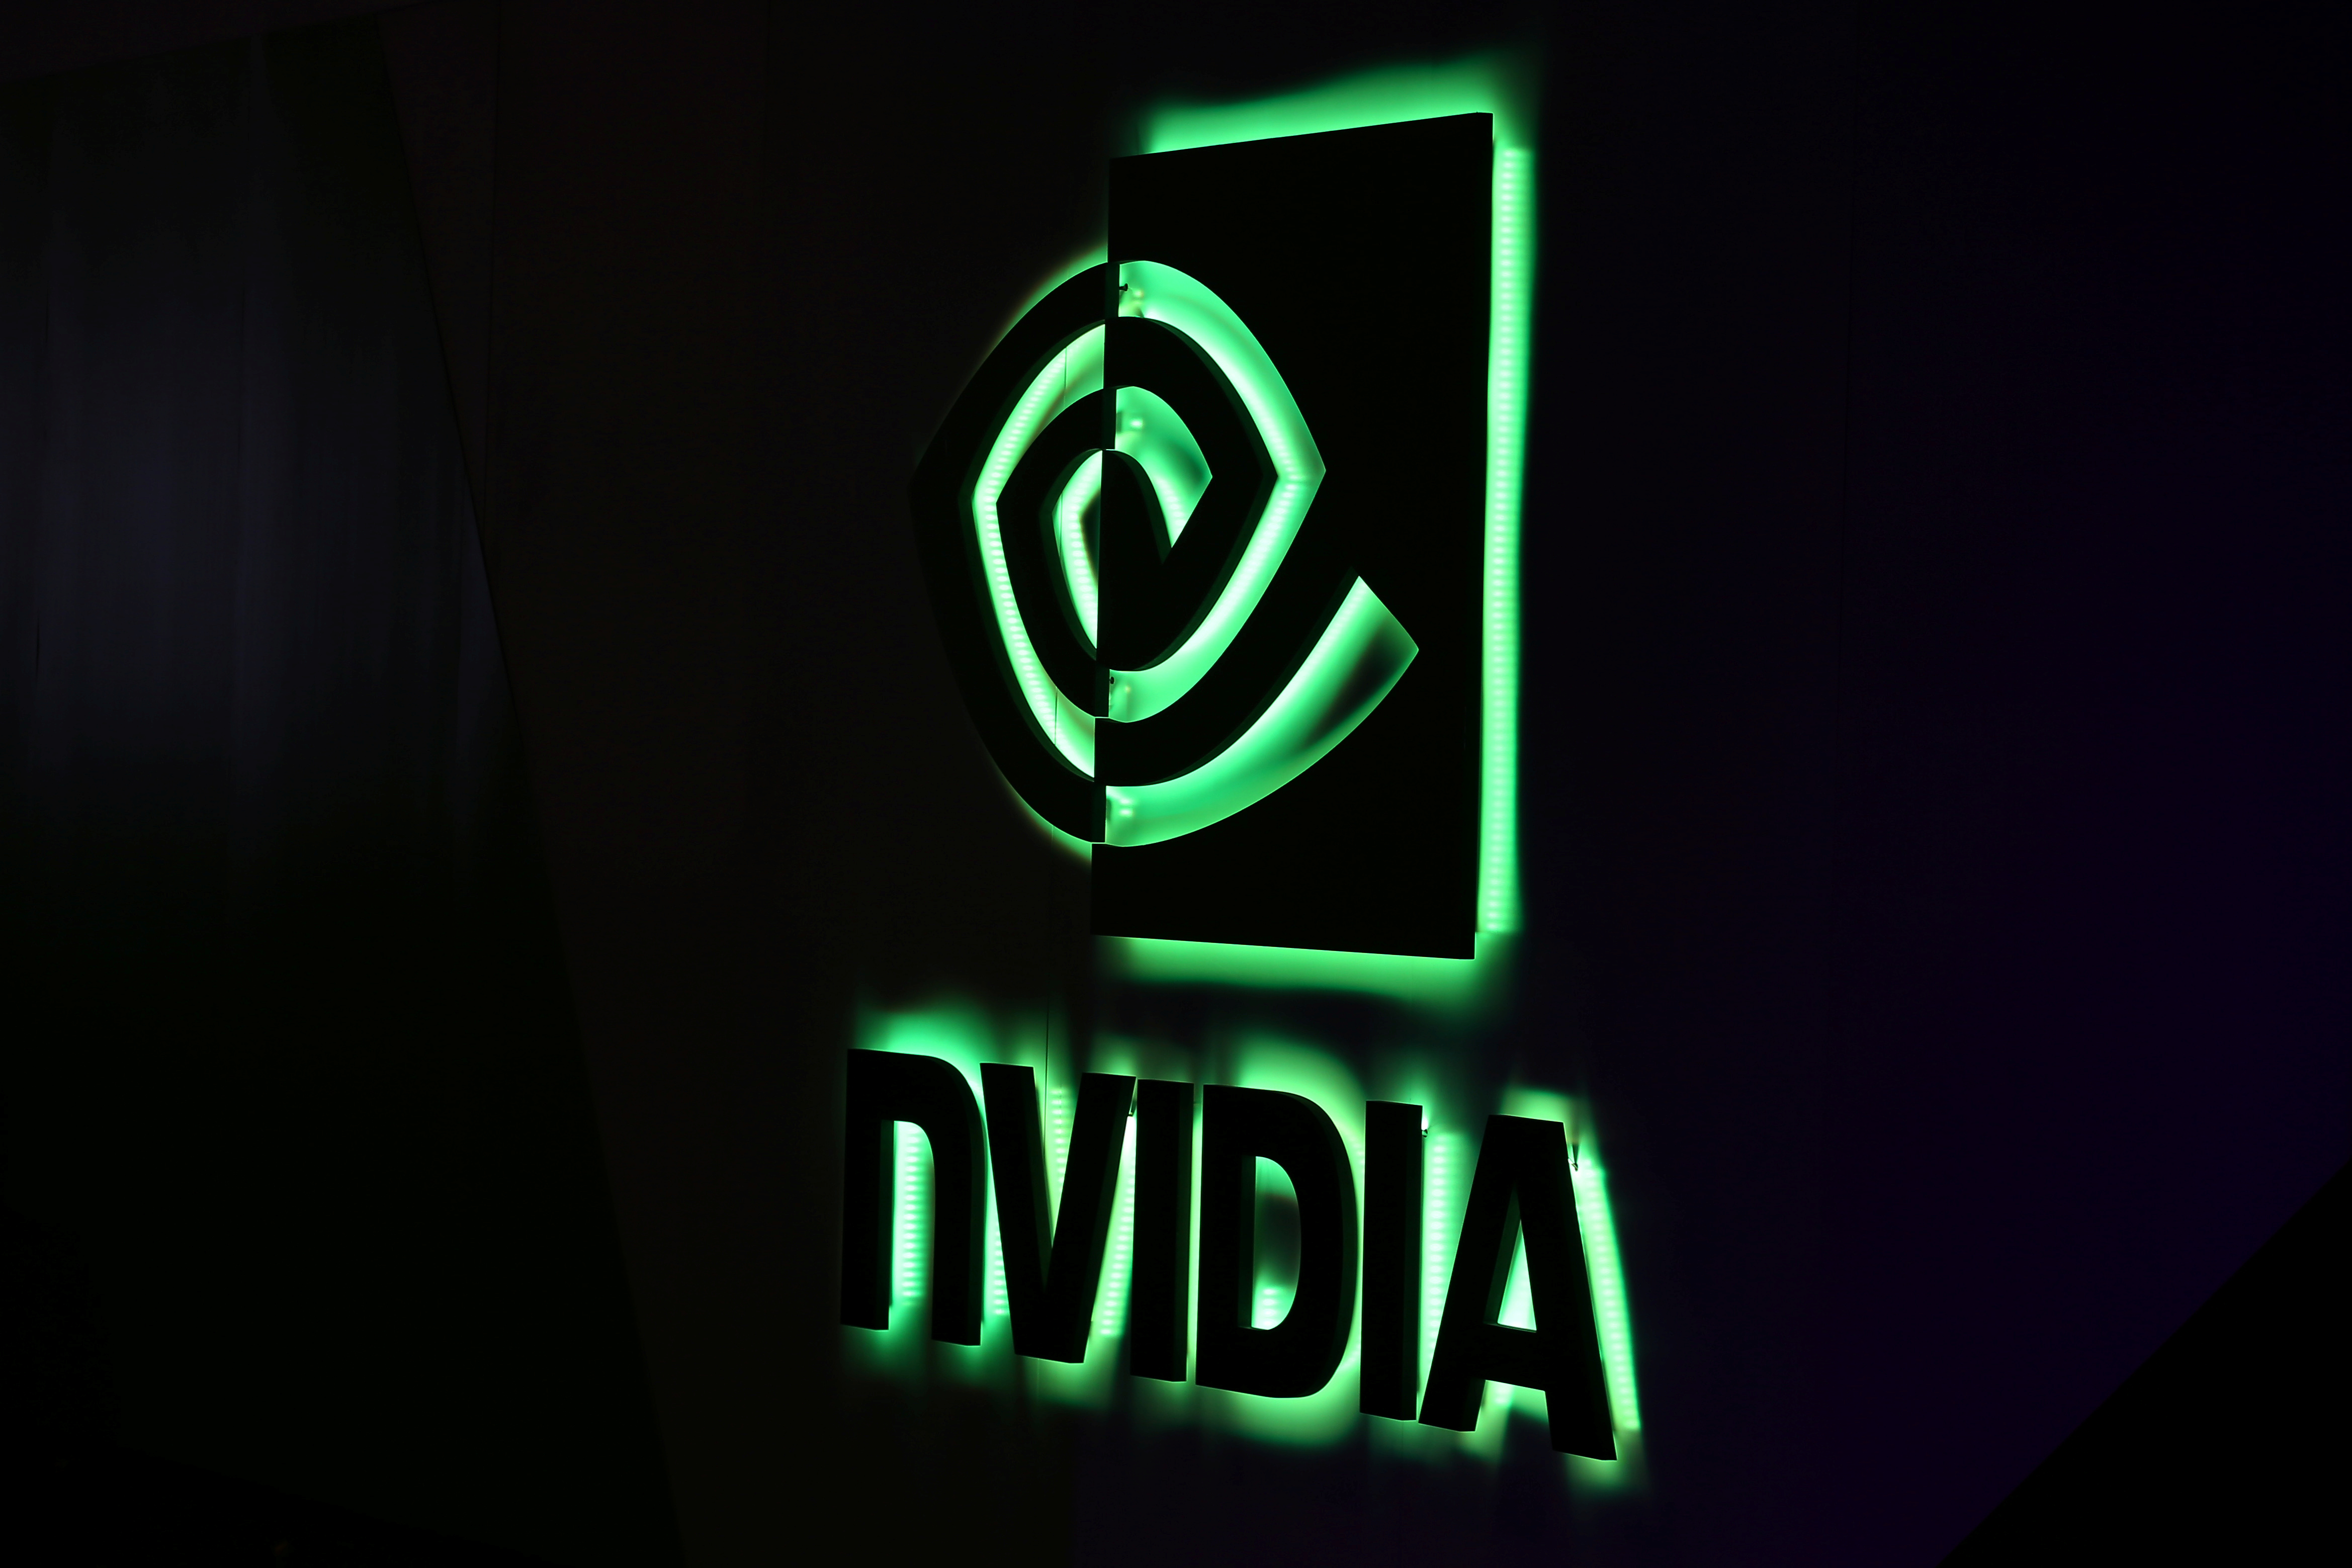 A NVIDIA logo is shown at SIGGRAPH 2017 in Los Angeles, California, U.S. July 31, 2017.  REUTERS/Mike Blake